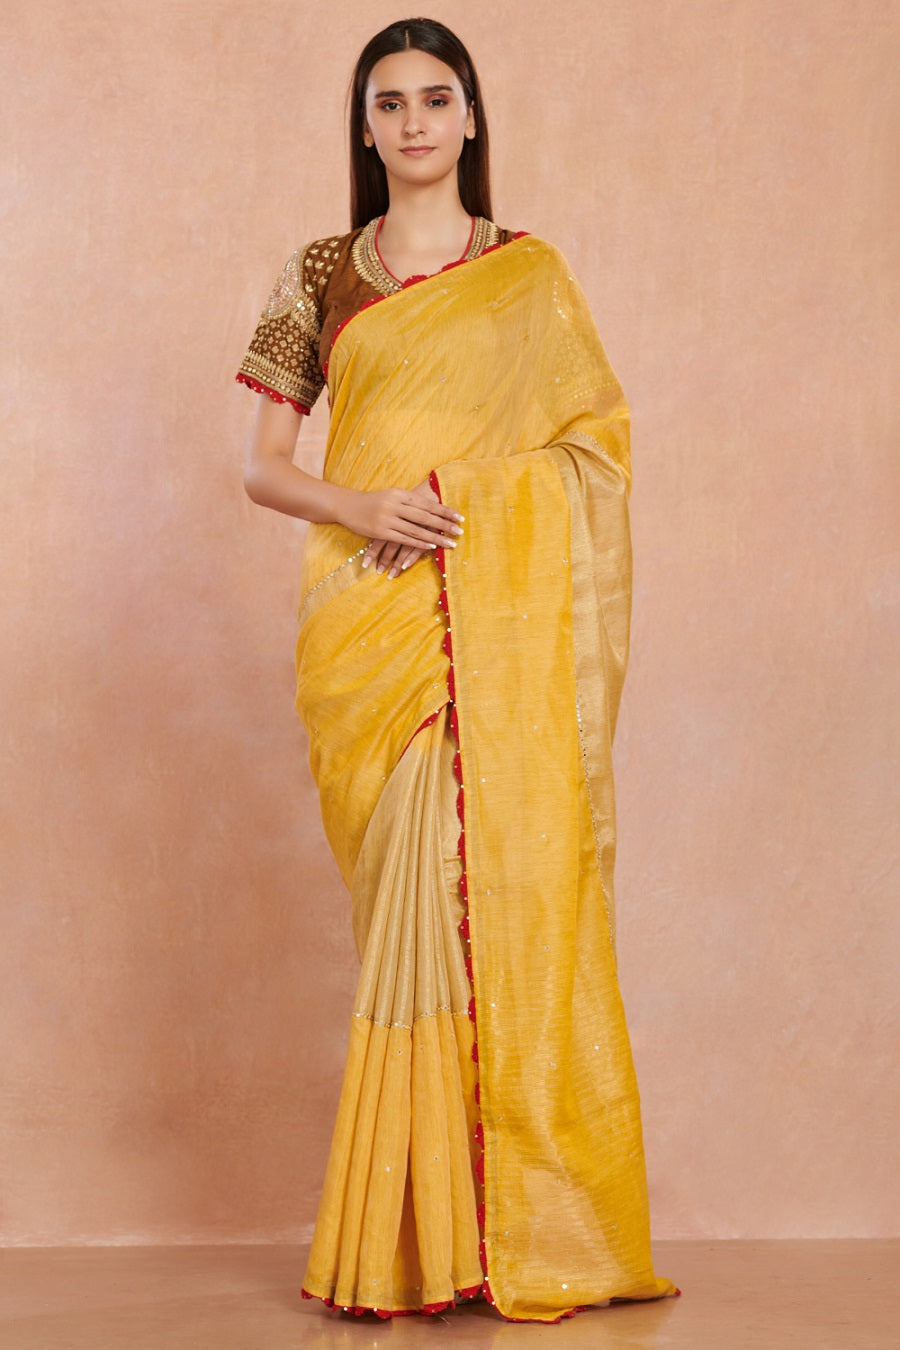 Shop gorgeous yellow embroidered handloom sari online in USA with brown embroidered sari blouse. Enhance your Indian look on weddings and special occasions with beautiful designer sarees, embroidered sarees, handwoven saris, pure silk sarees from Pure Elegance Indian saree store in USA.-full view